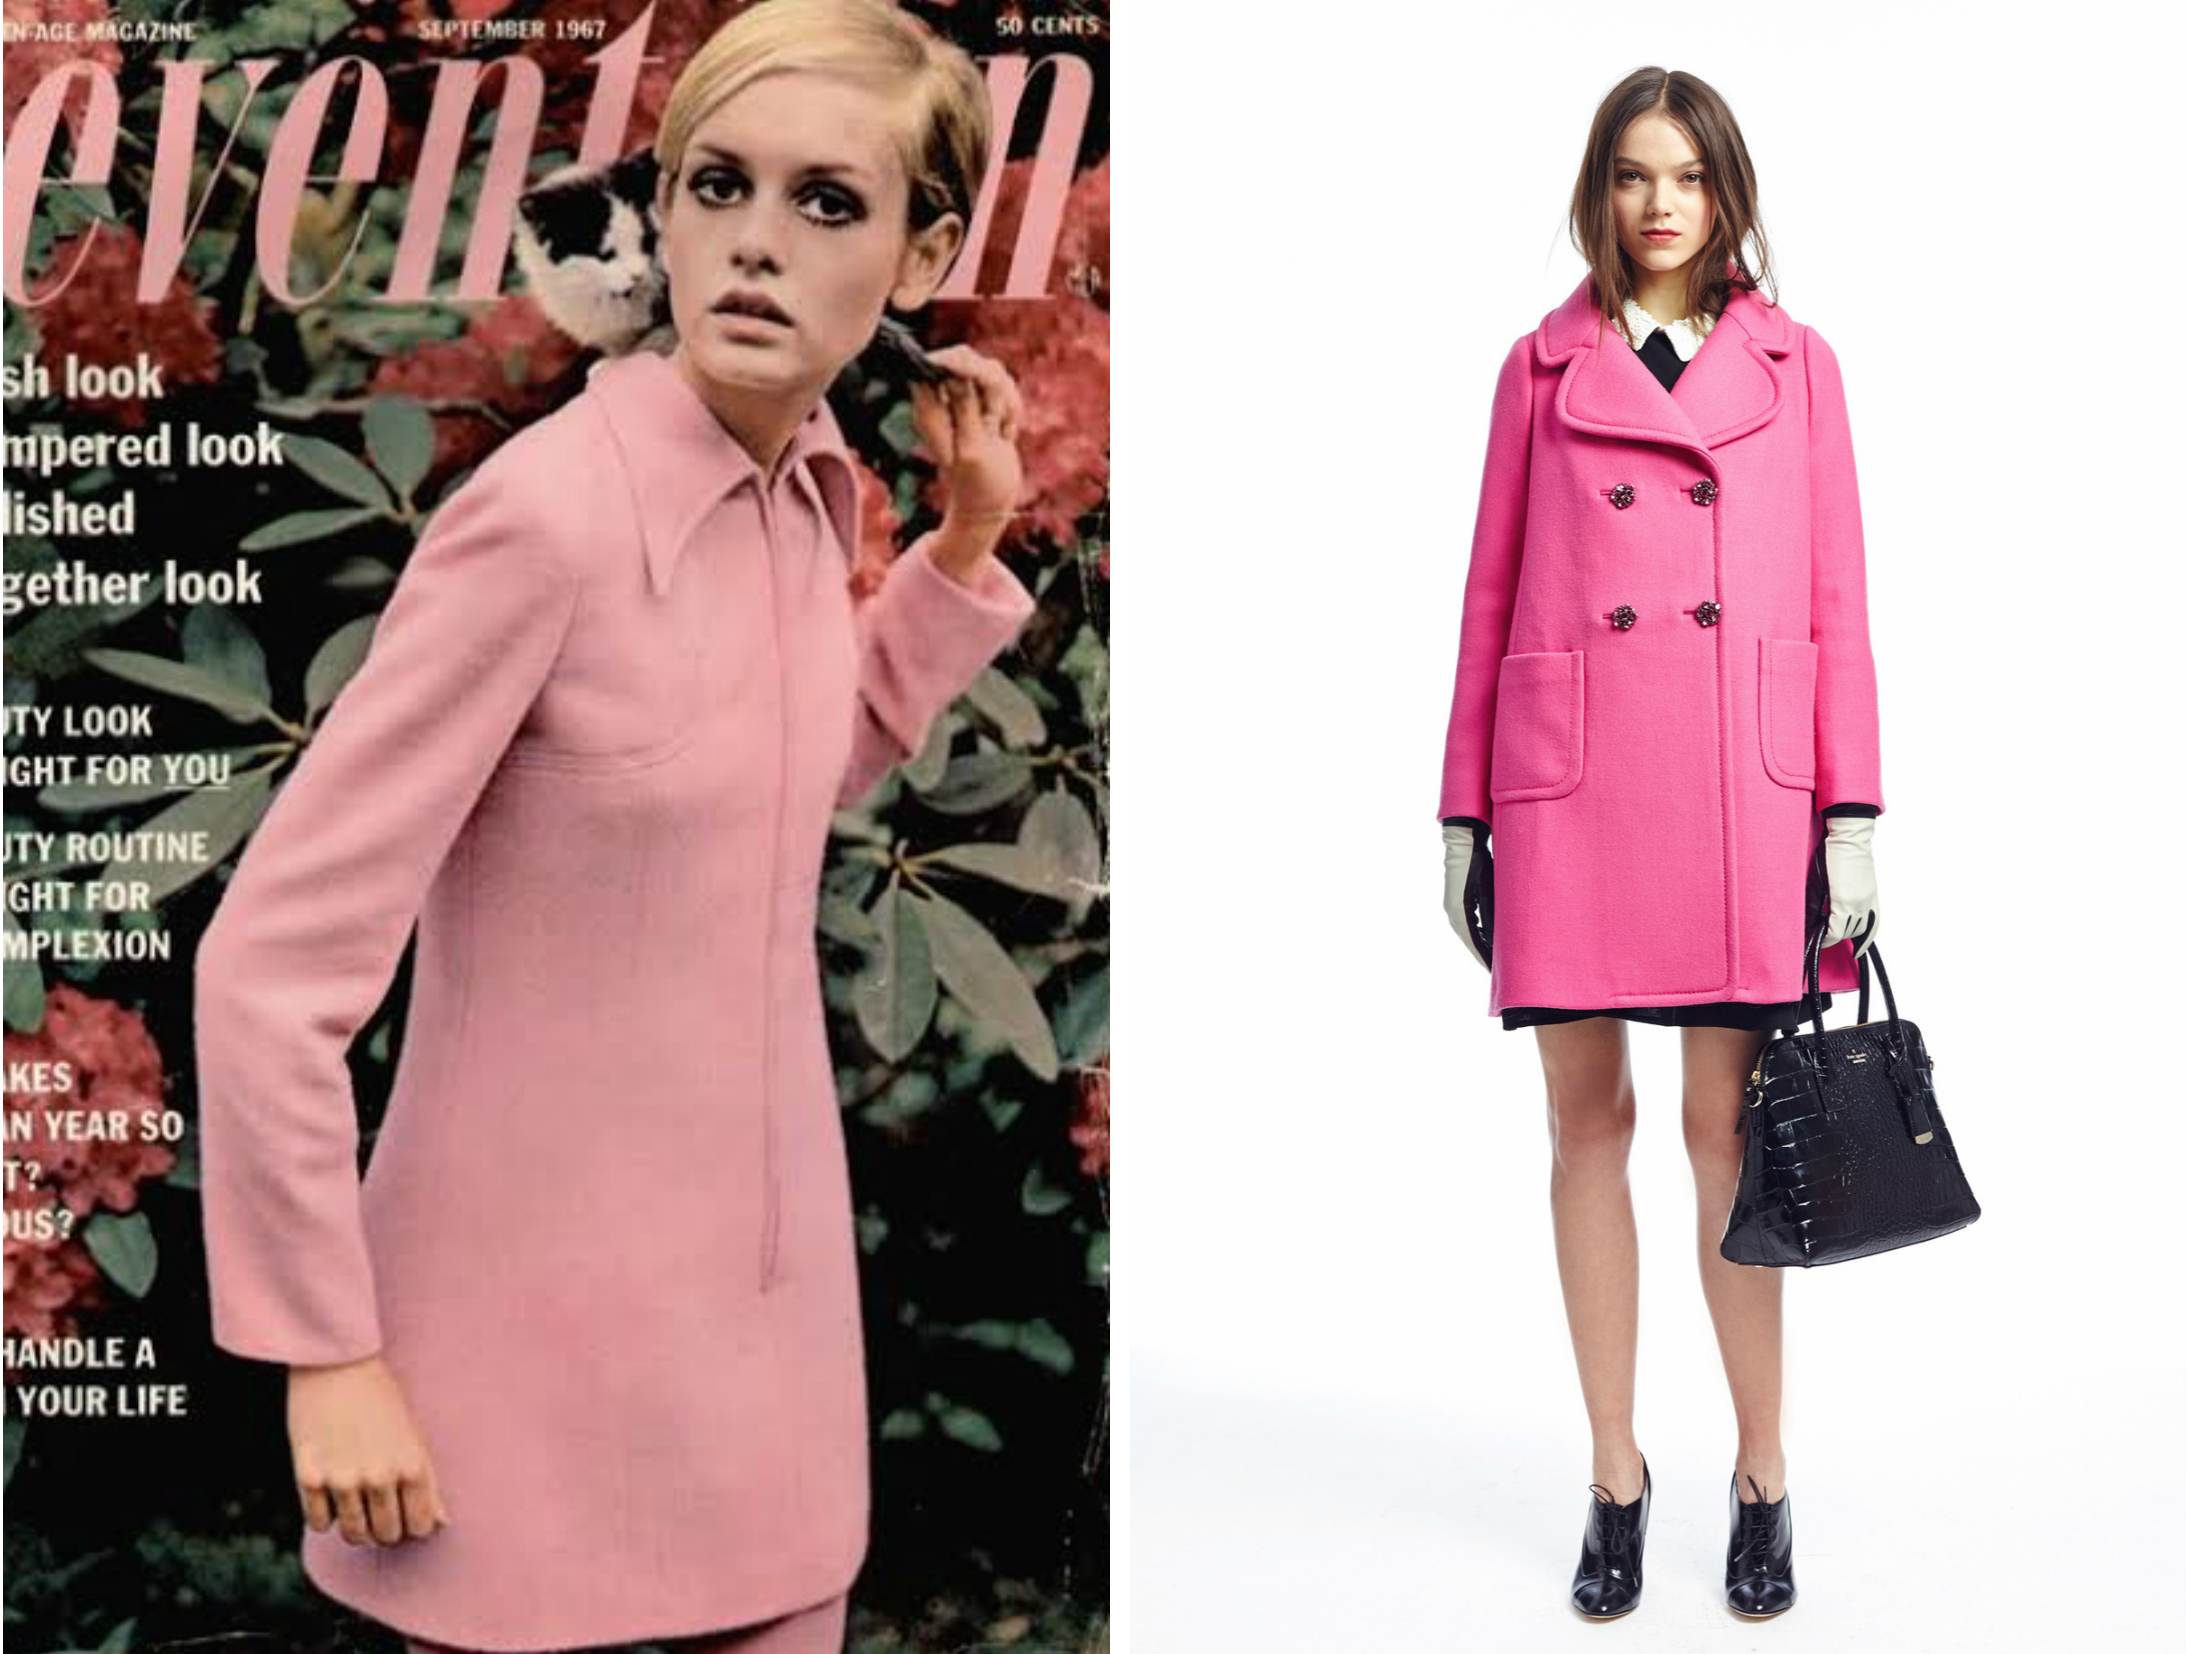 From left to right: Twiggy in a beautiful baby pink coat for the Fall 1967 edition of Seventeen magazine and Kate Spade's collection for New York Fashion Week, Fall 2015.